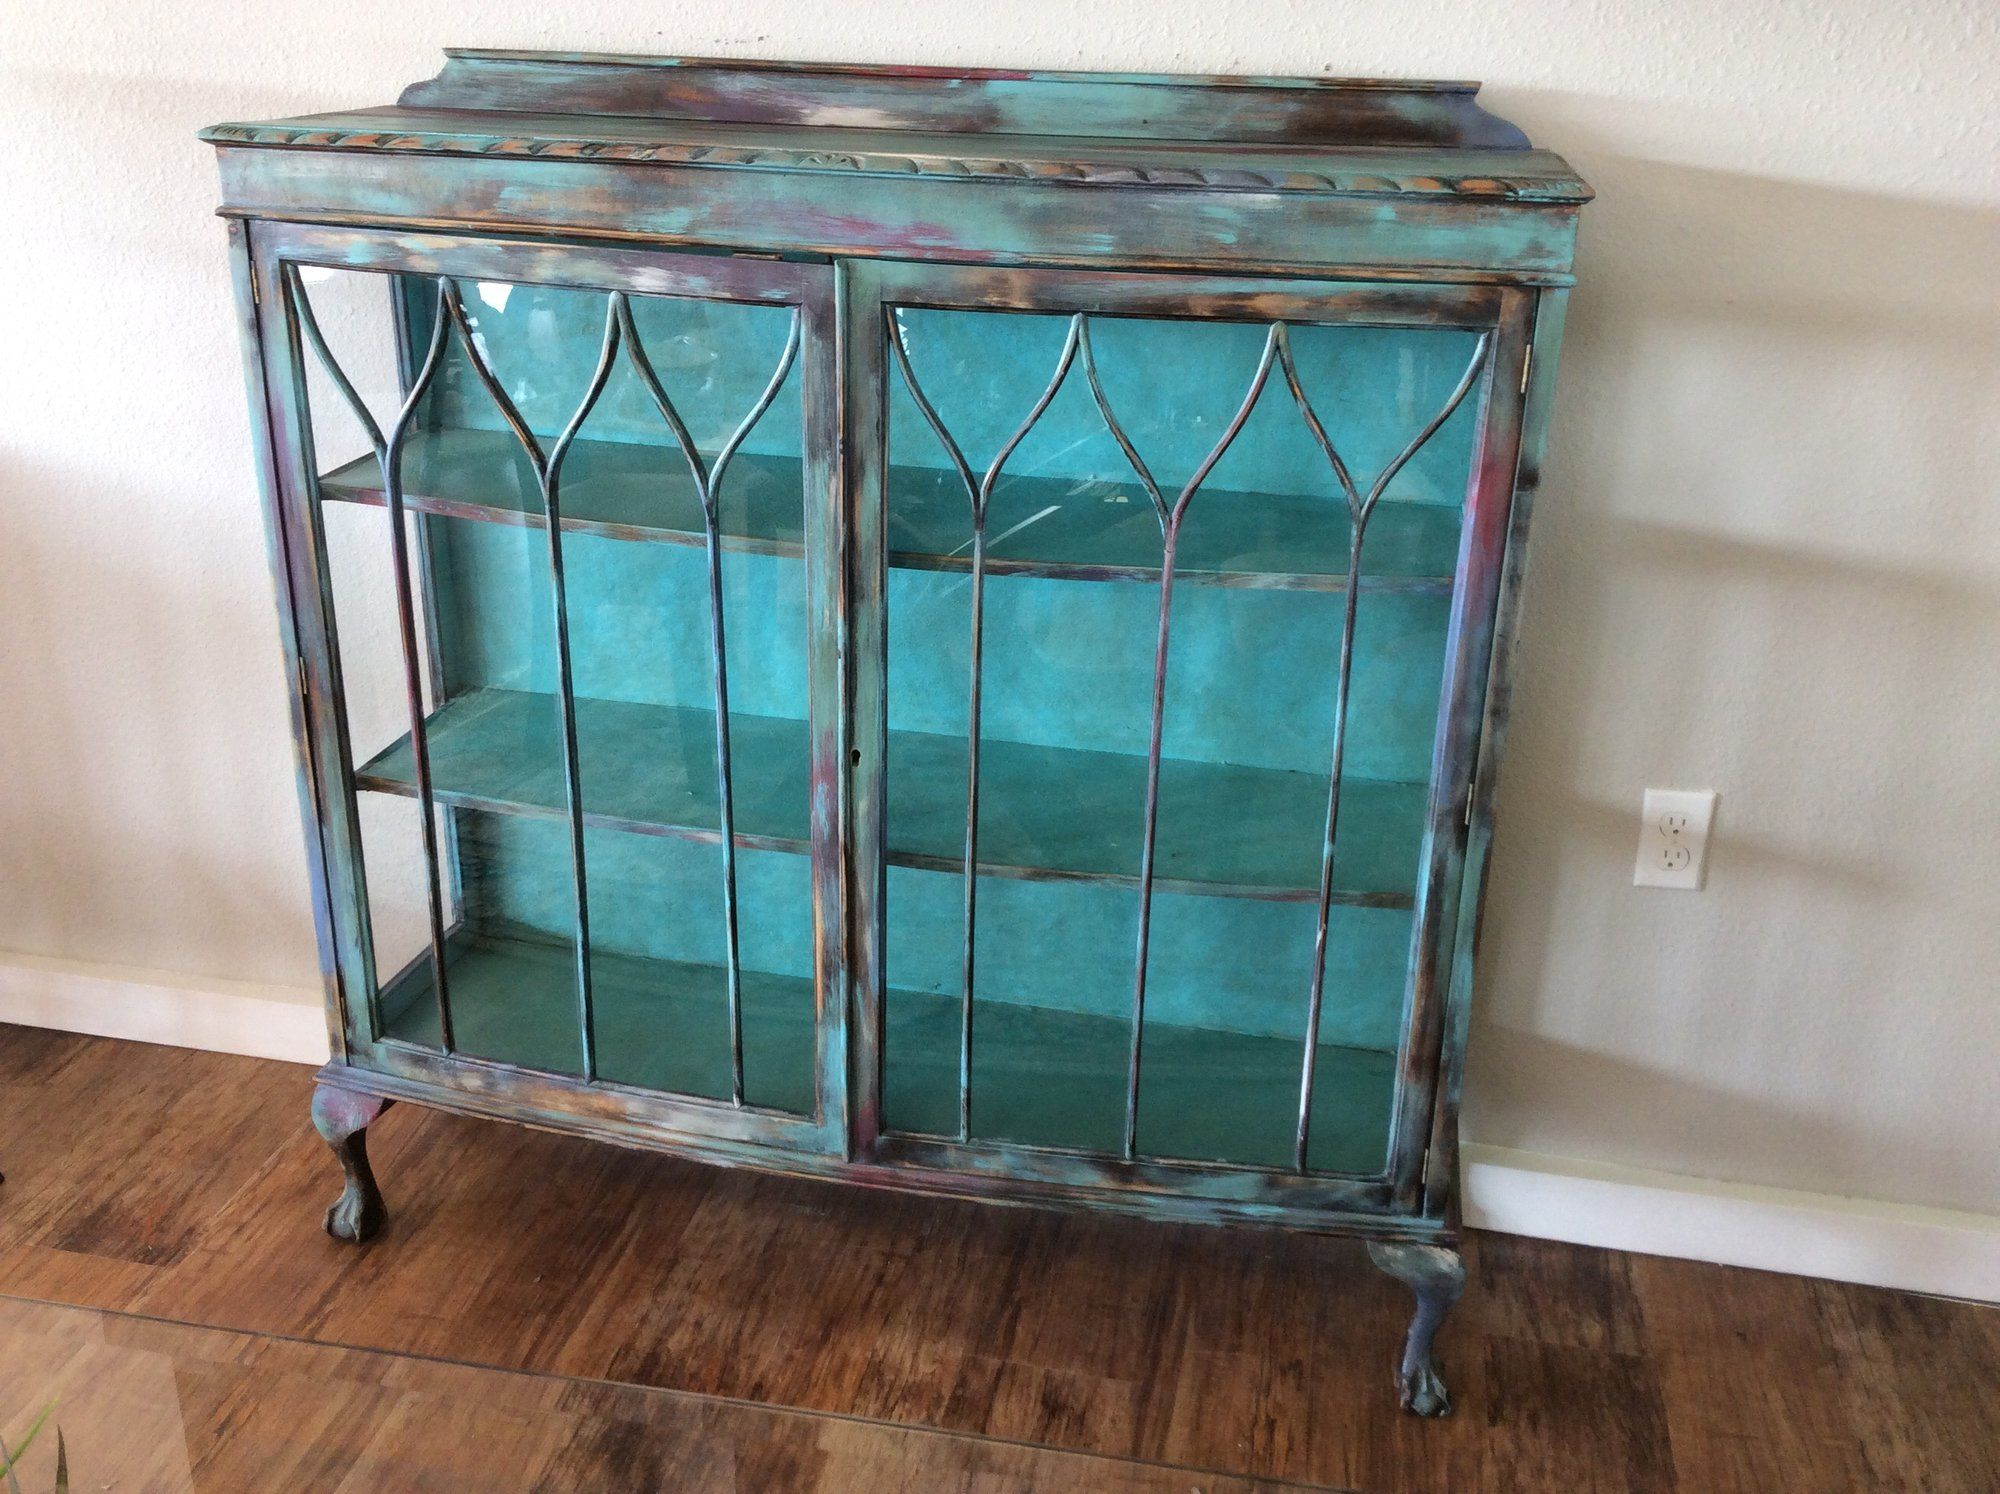 This Small Shabby Chic Curio Cabinet Is Very Colorful! It Features A Multi  Colored Wood